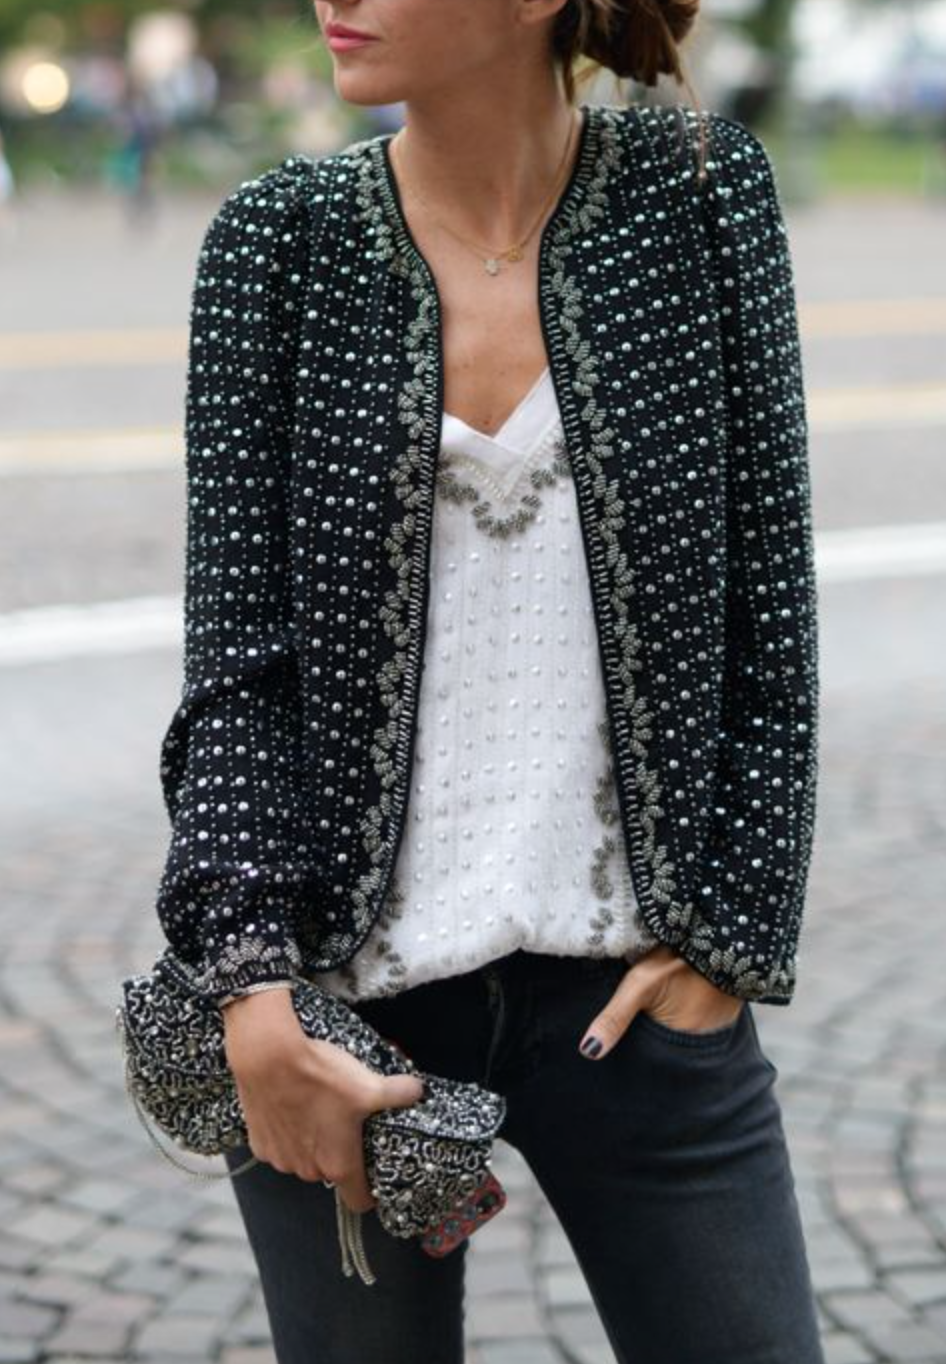 style details.... love the jacket!